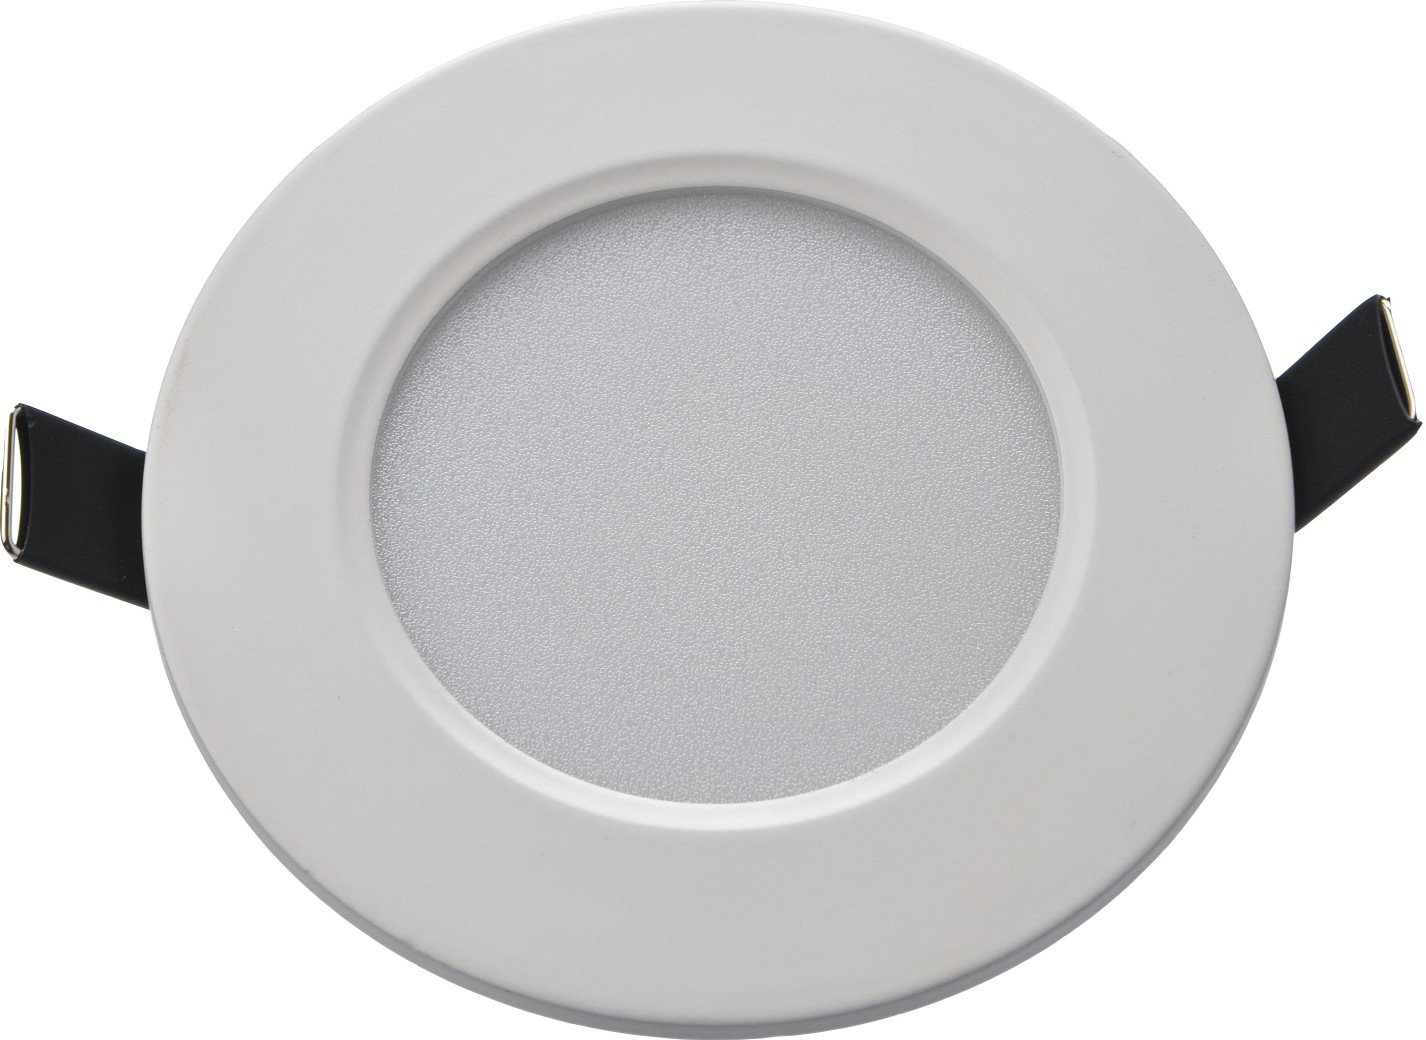 Ceiling Led Lights Flipkart : Neptune w led panel light round warm ceiling lamp price